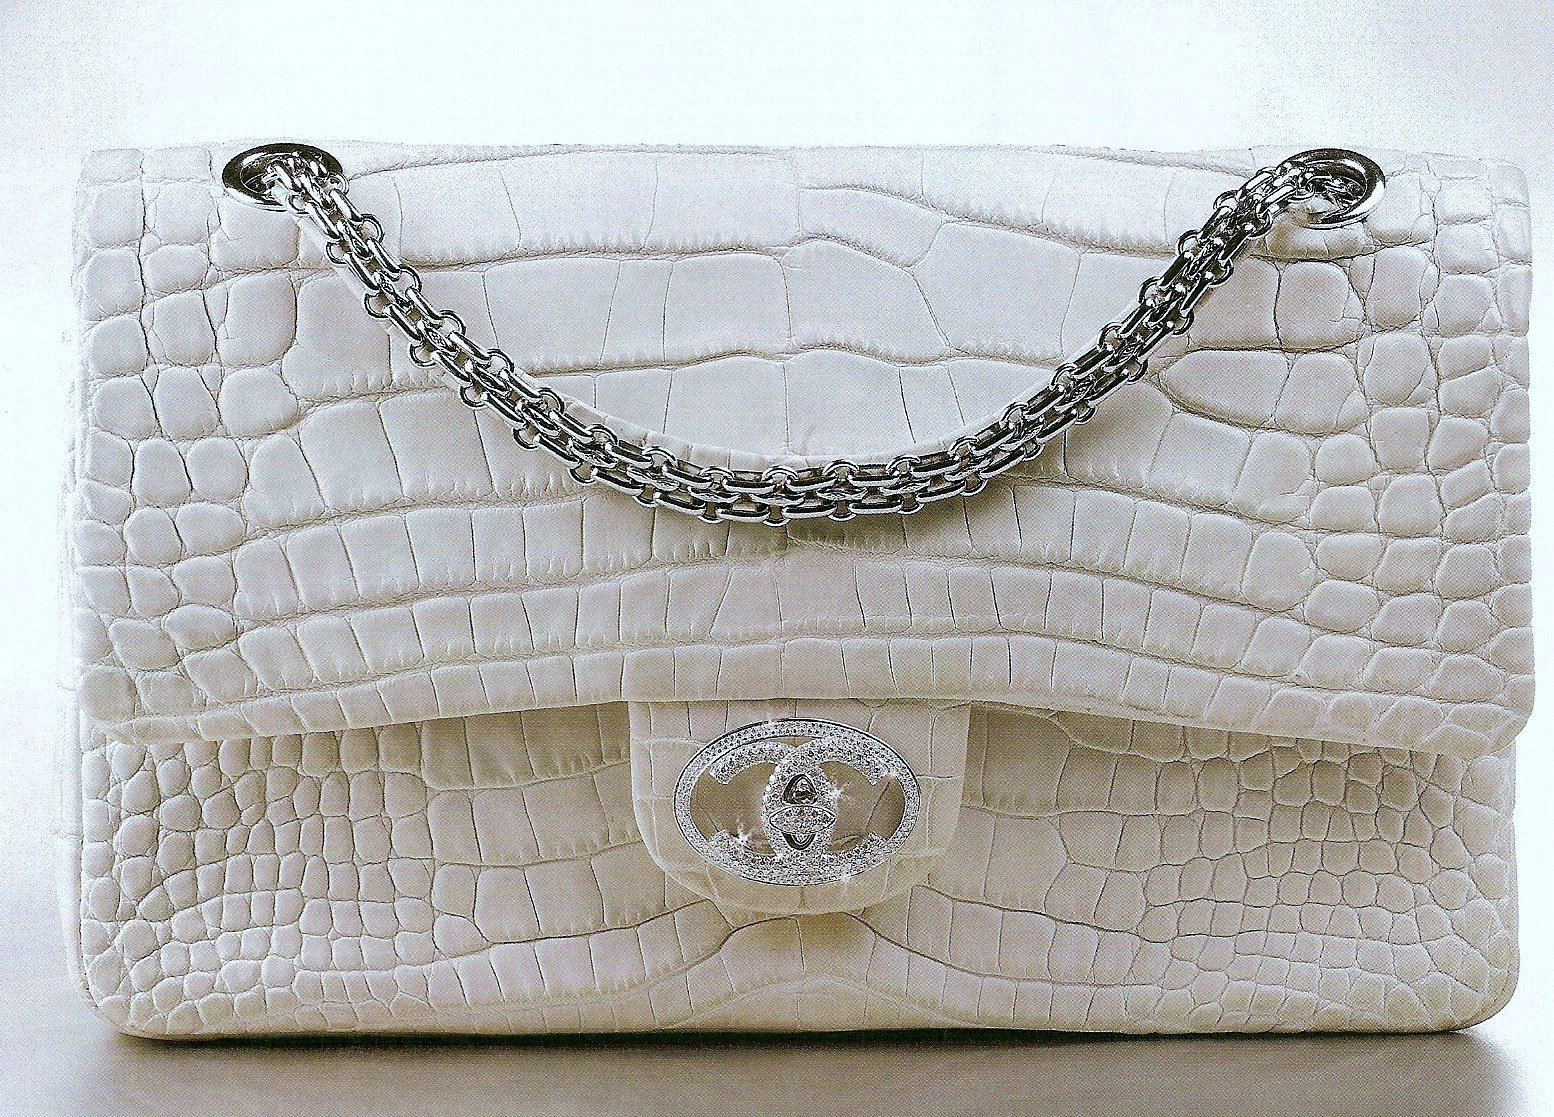 The Chanel Diamond Forever Classic Handbag 261k